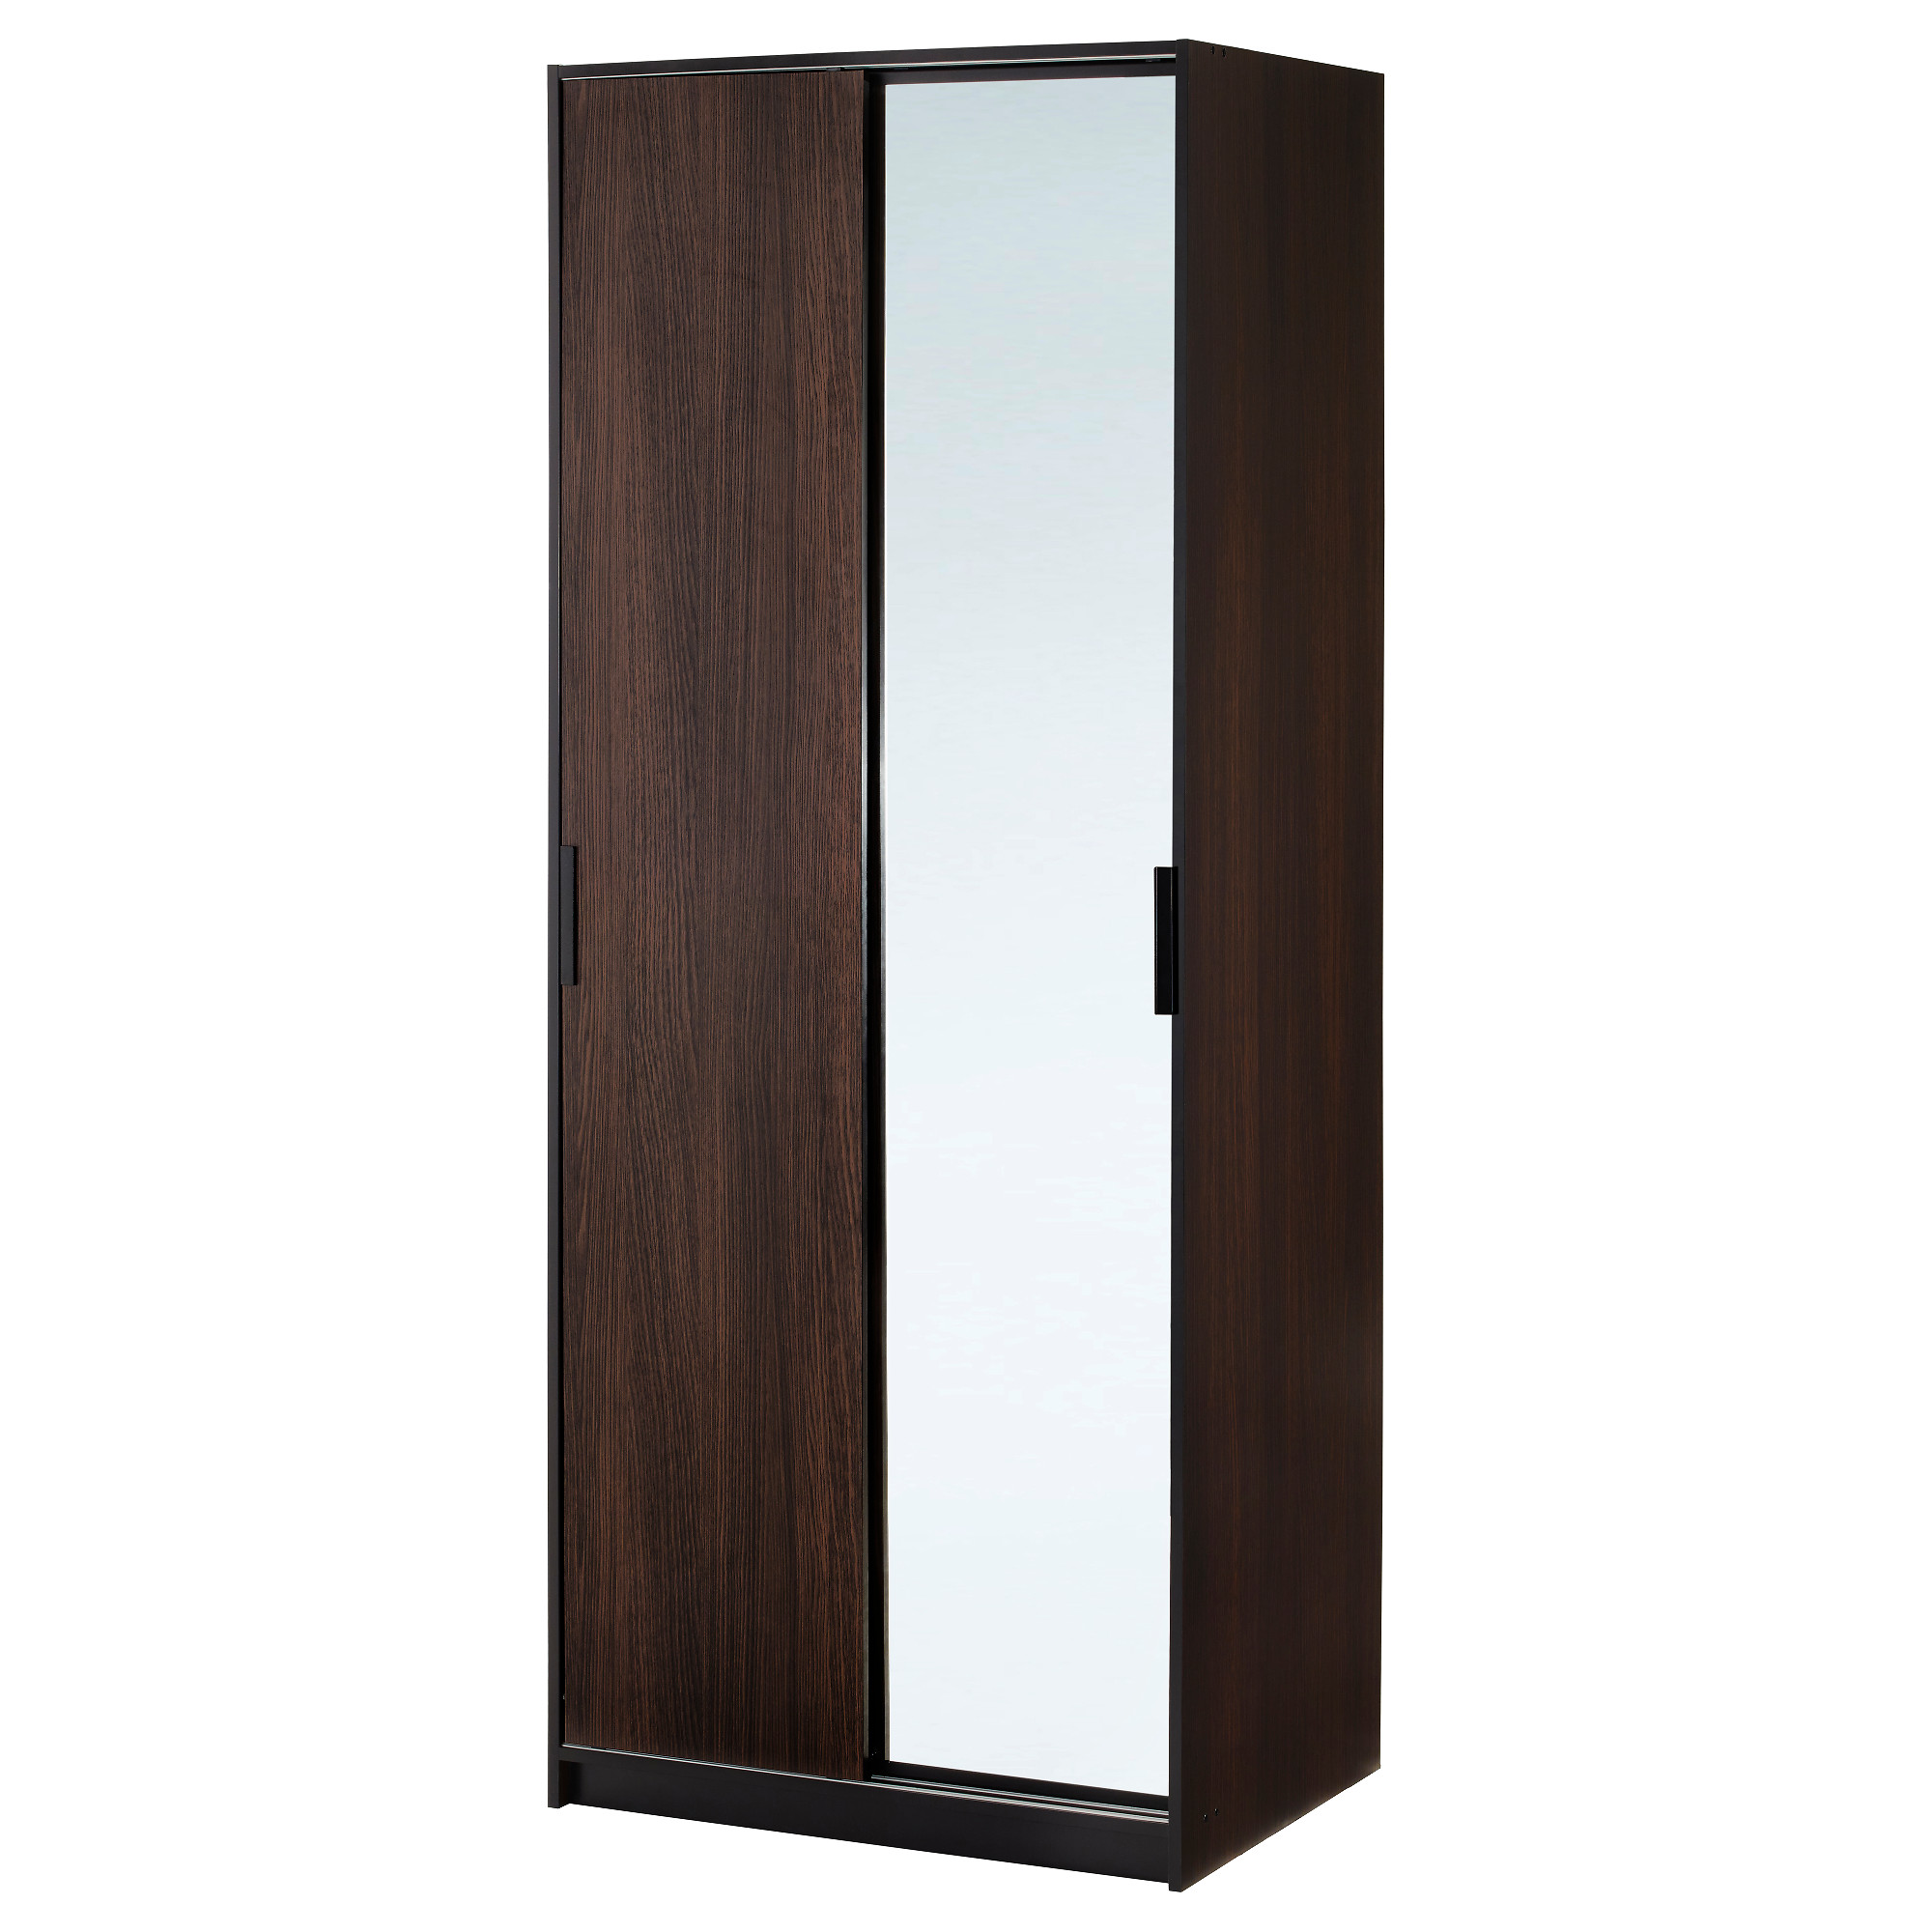 wardrobe sliding trysil possible wide ikea w foot contemporary stunning wardrobes gallery decoration free standing neoteric of our ideas solution doorloset